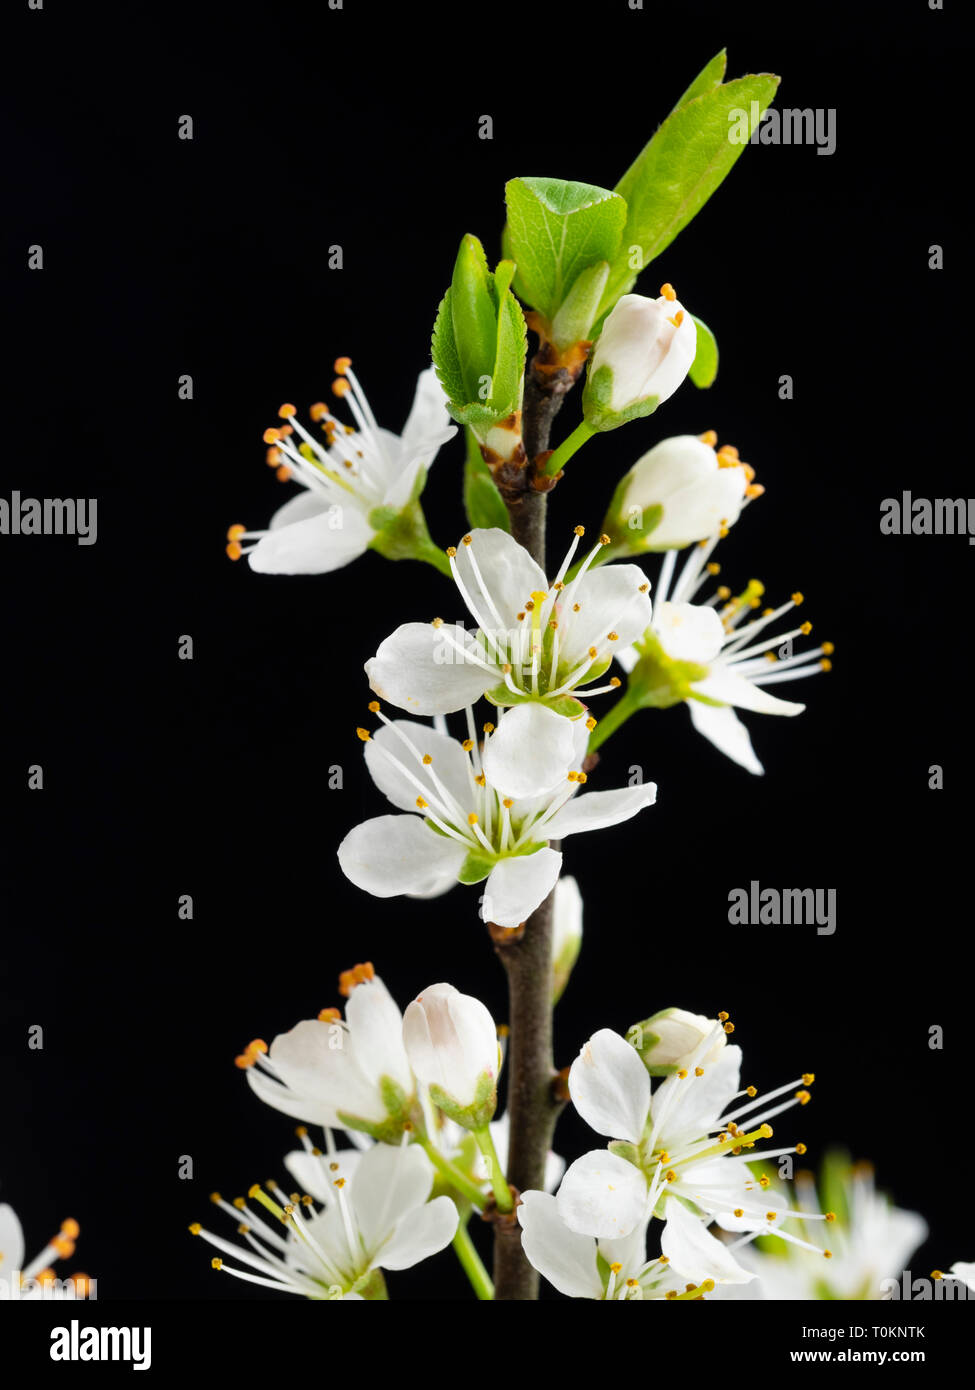 White spring flowers of the blackthorn, Prunus spinosa, against a black background - Stock Image